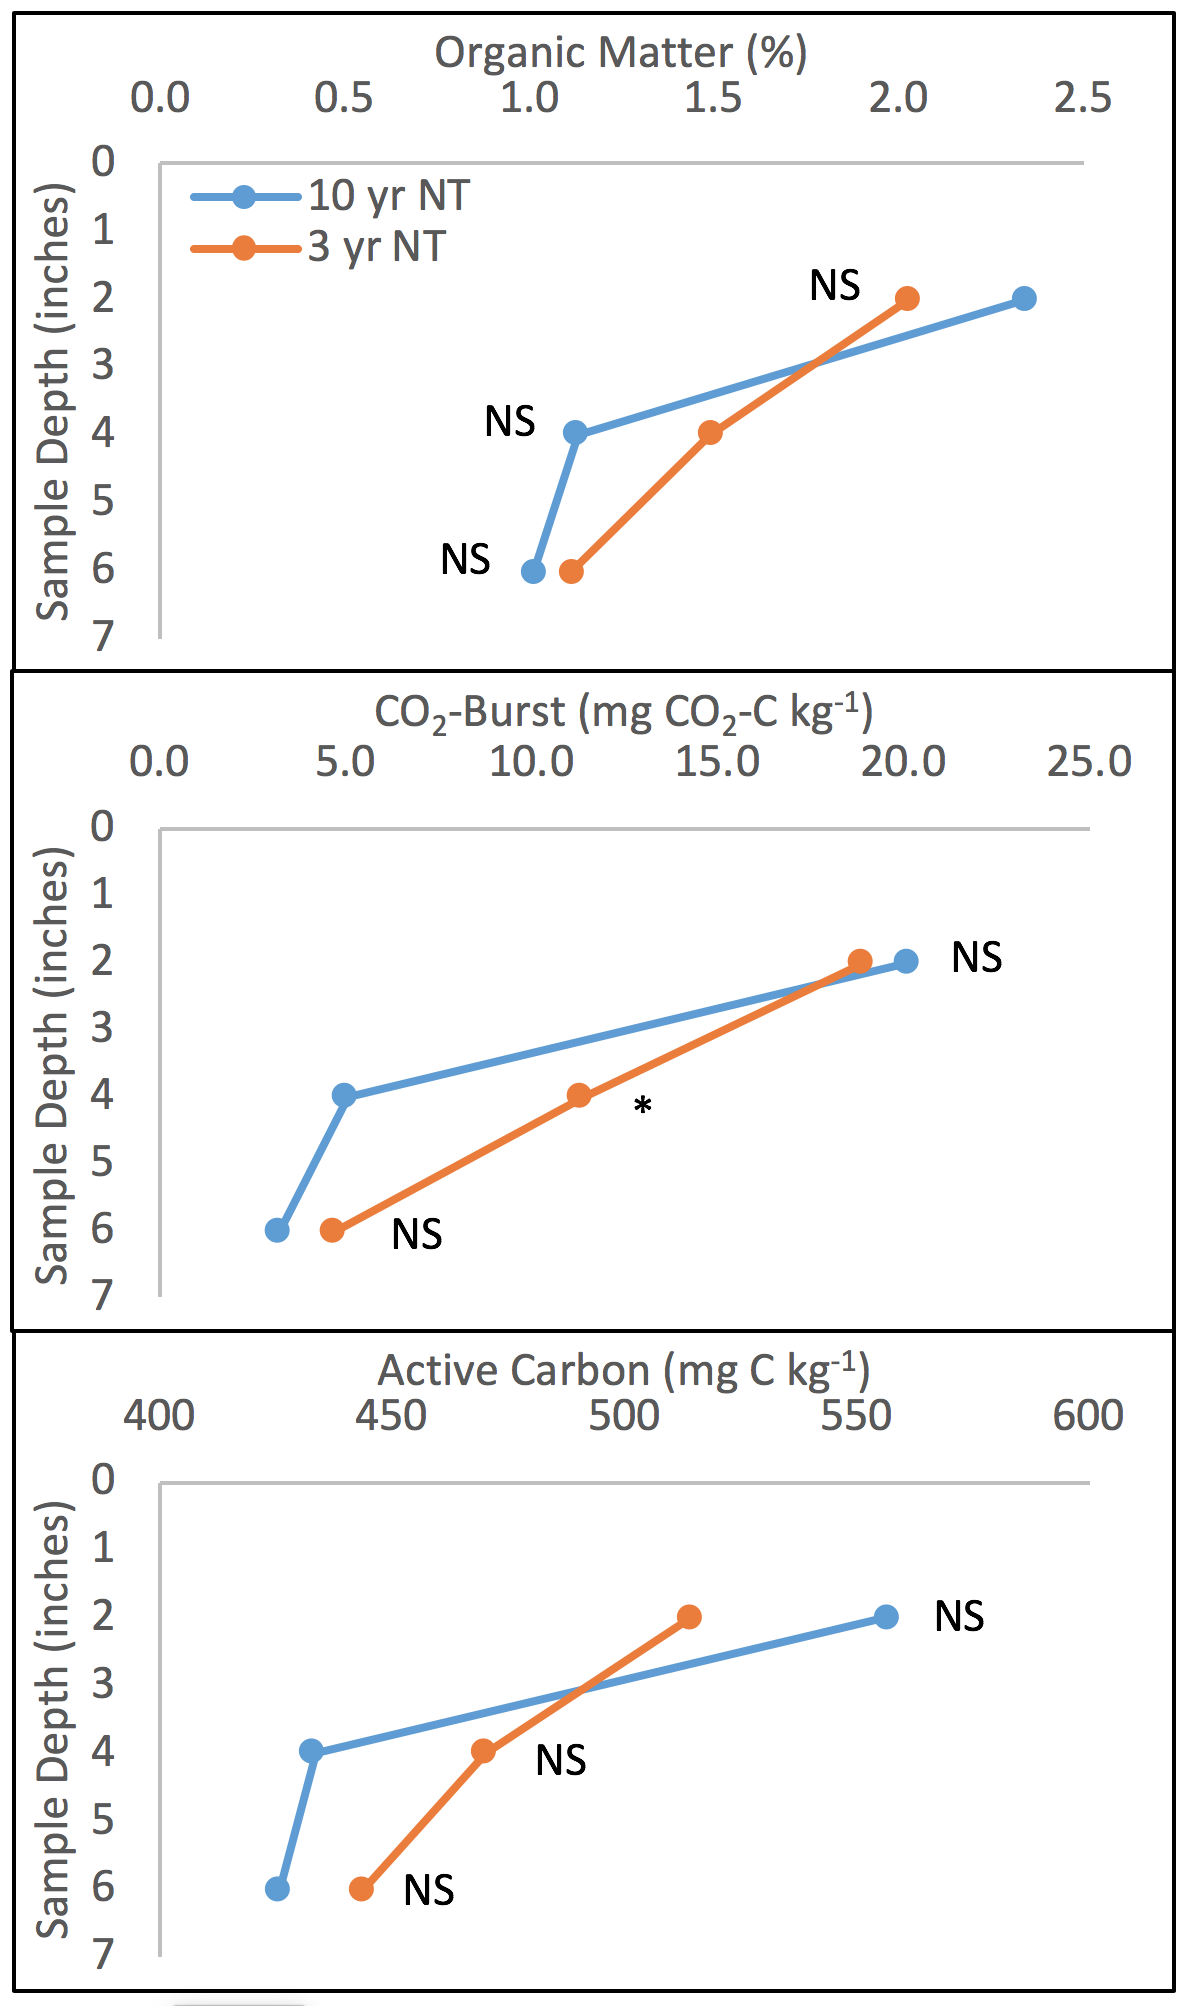 The distributions of soil organic matter, CO2-burst and active carbon by sampling depth in soil samples collected in August 2015 from the 10-year-old and 3-year-old no-till plots located at Lake Carl Blackwell west of Stillwater.